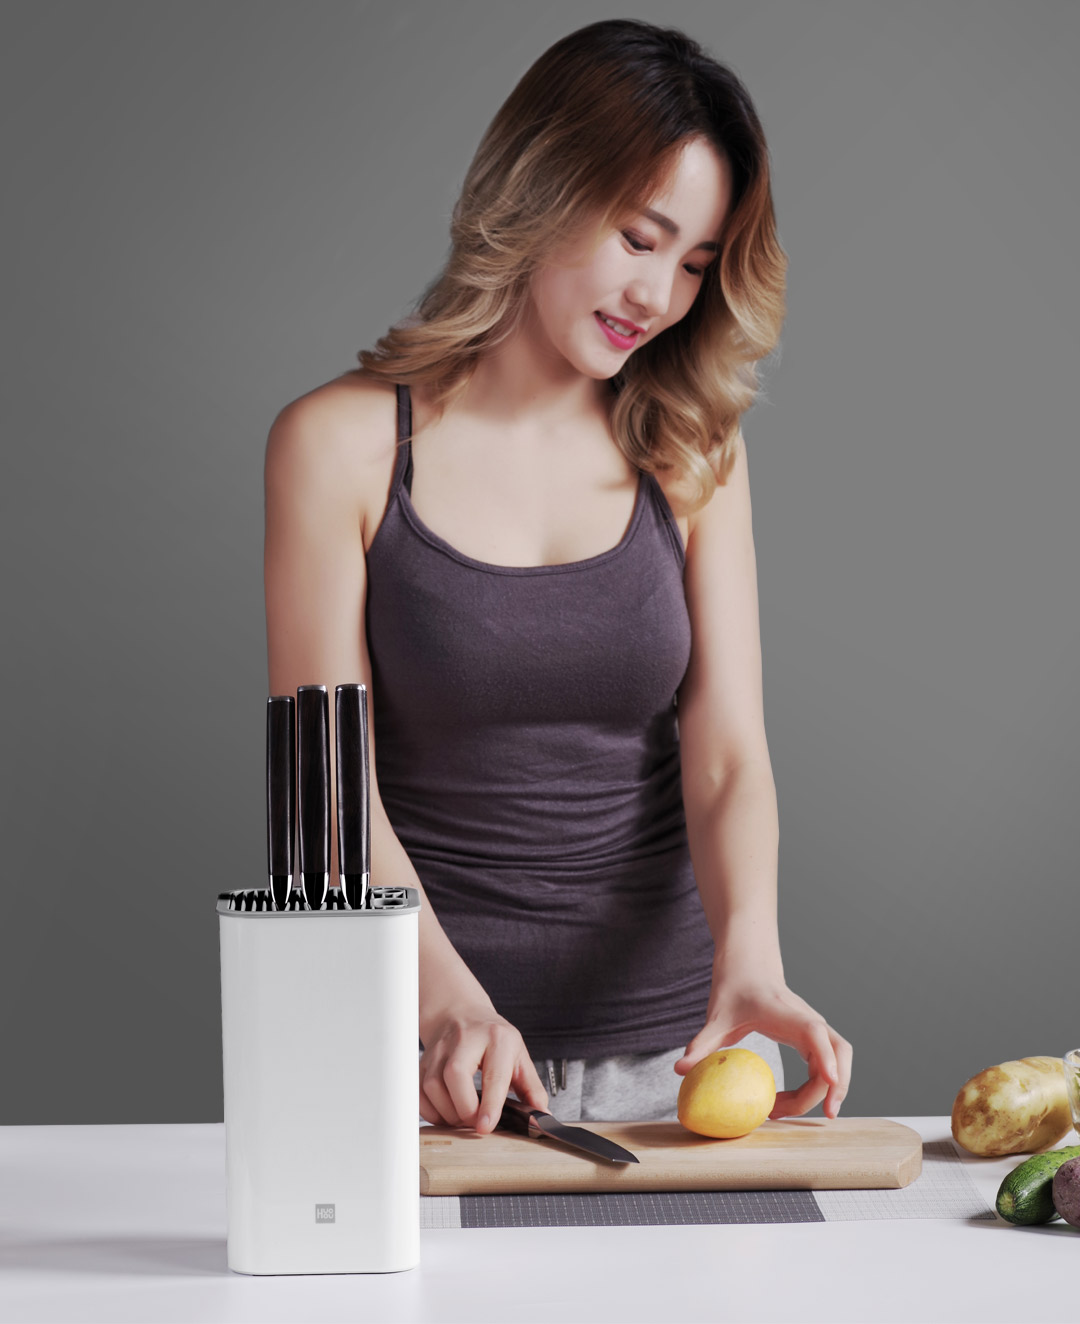 Image 5 - Xiaomi Youpin Huohou Universal Knife Holder is Super complete Suitable for All Kinds of Knives Whole Body Washing-in Smart Remote Control from Consumer Electronics